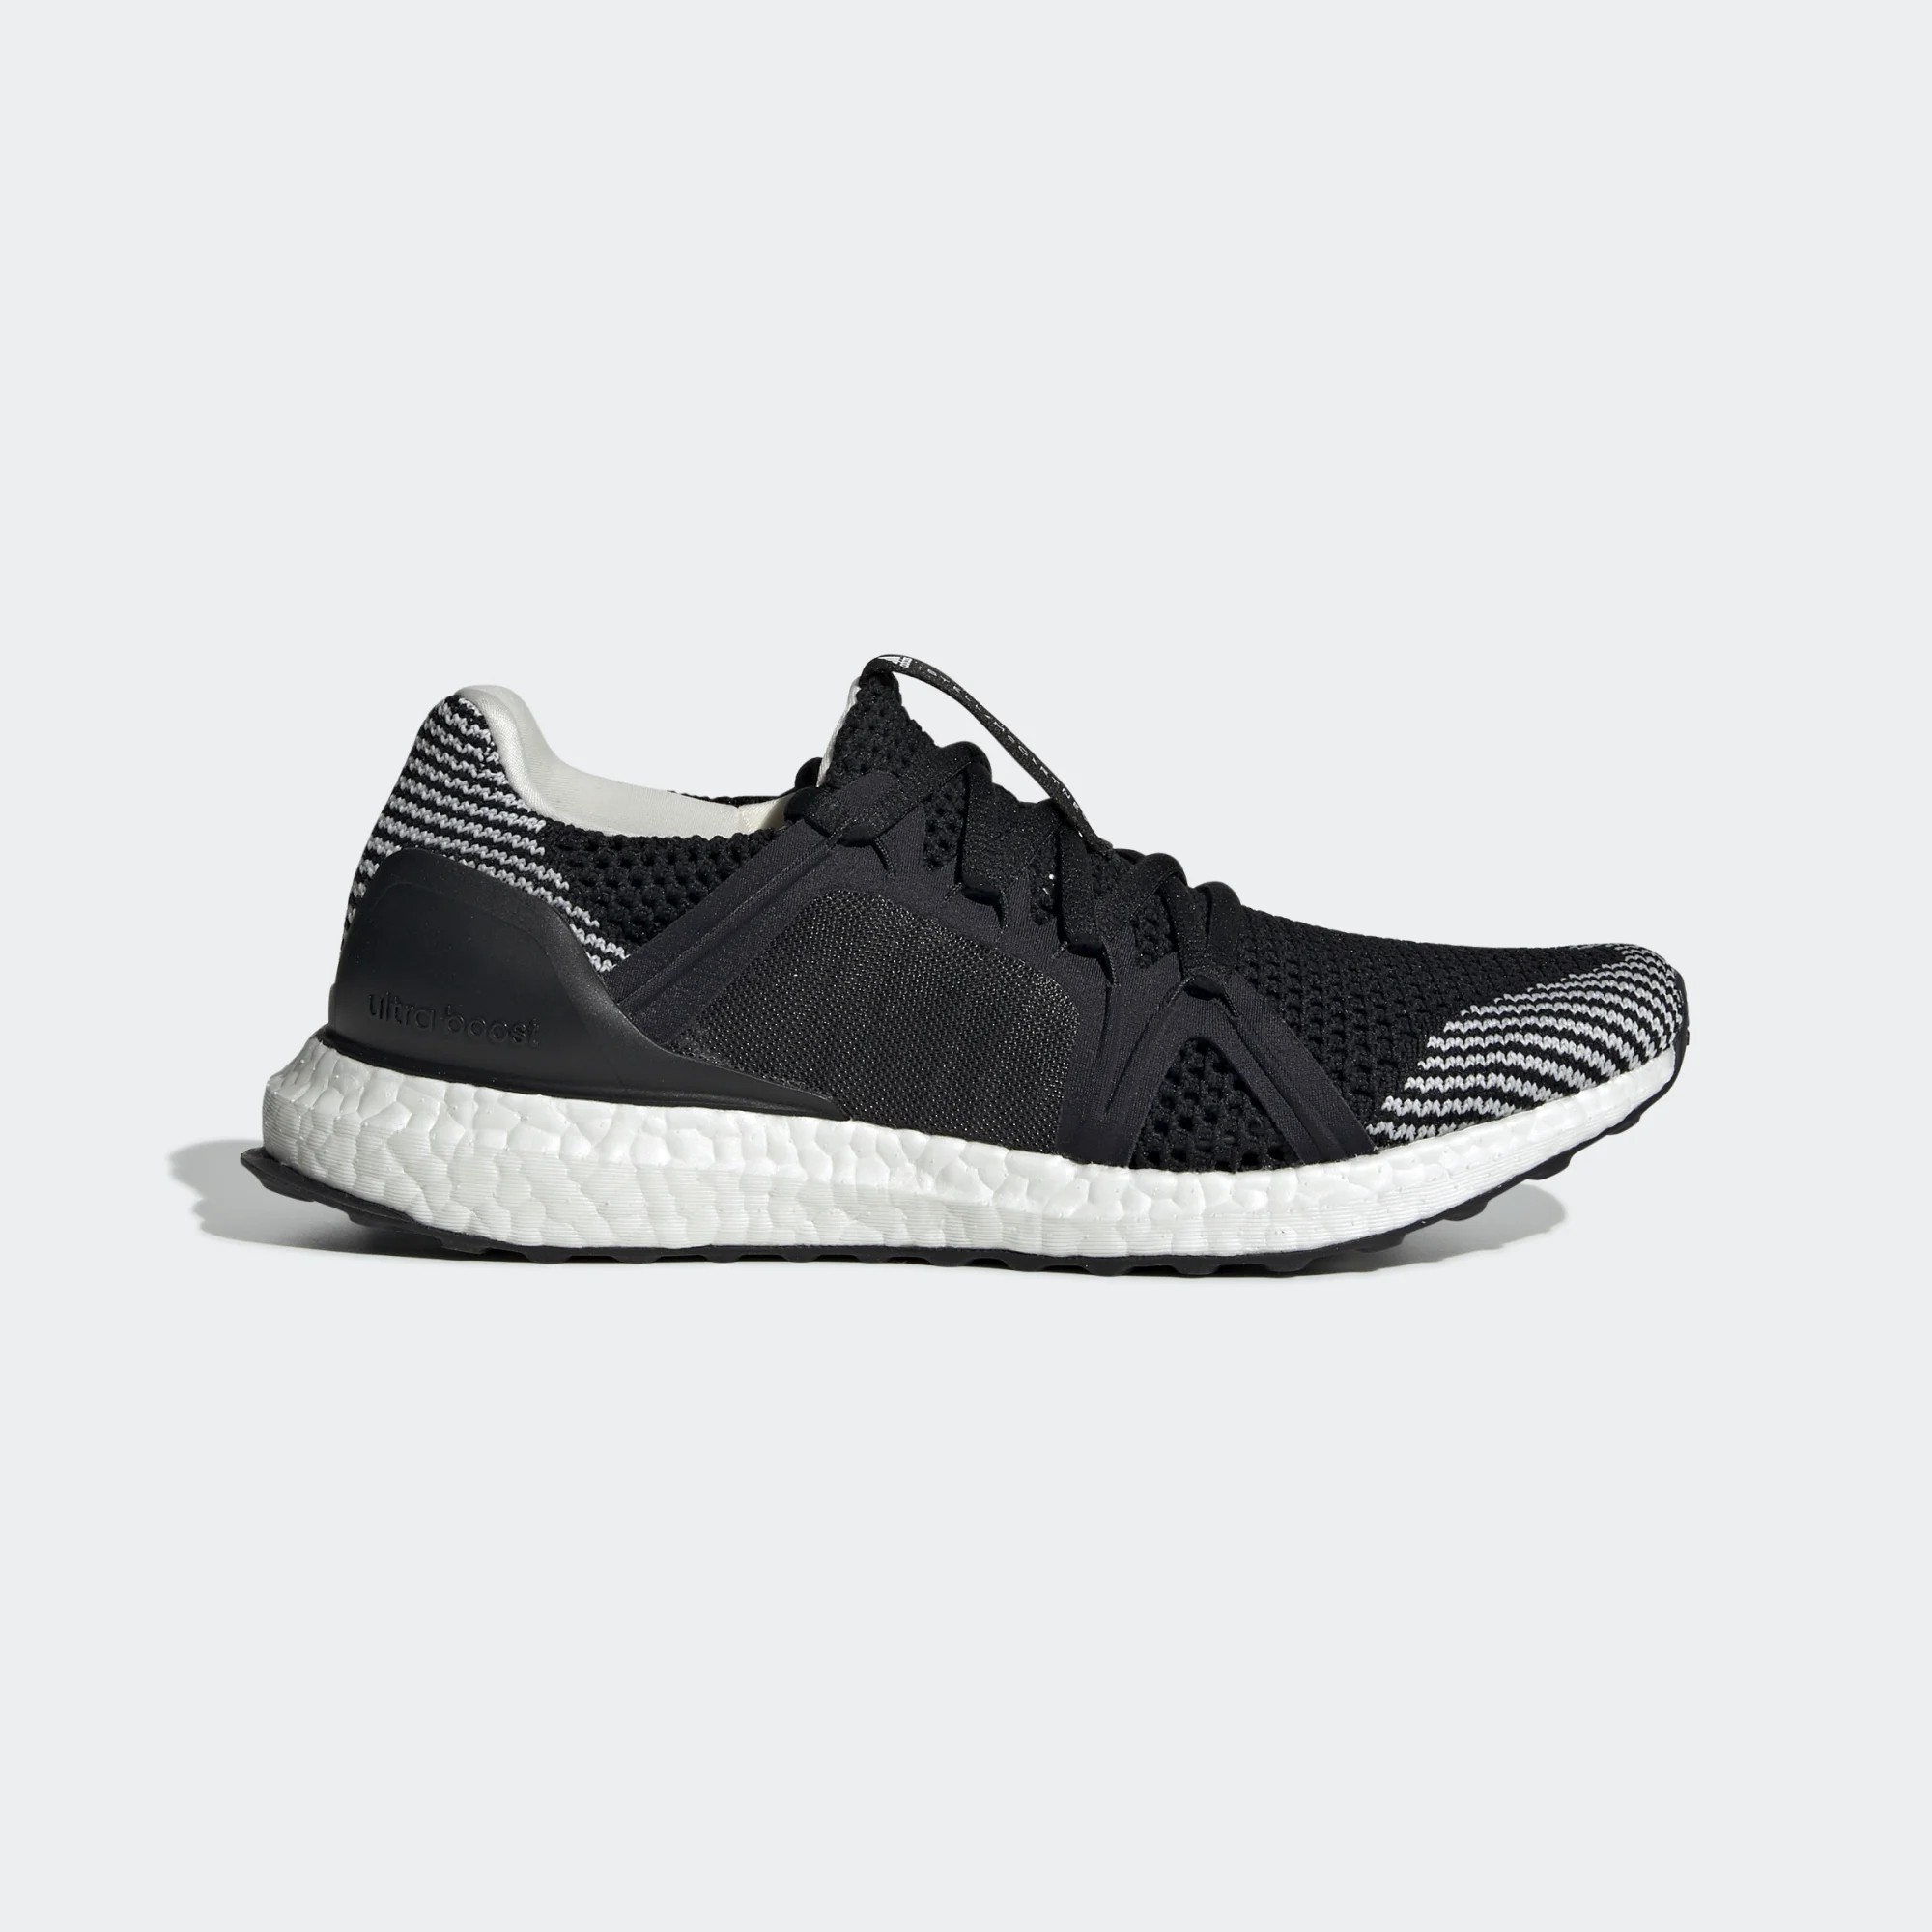 Stella McCartney x Wmns UltraBoost 'Black Granite' adidas F35901